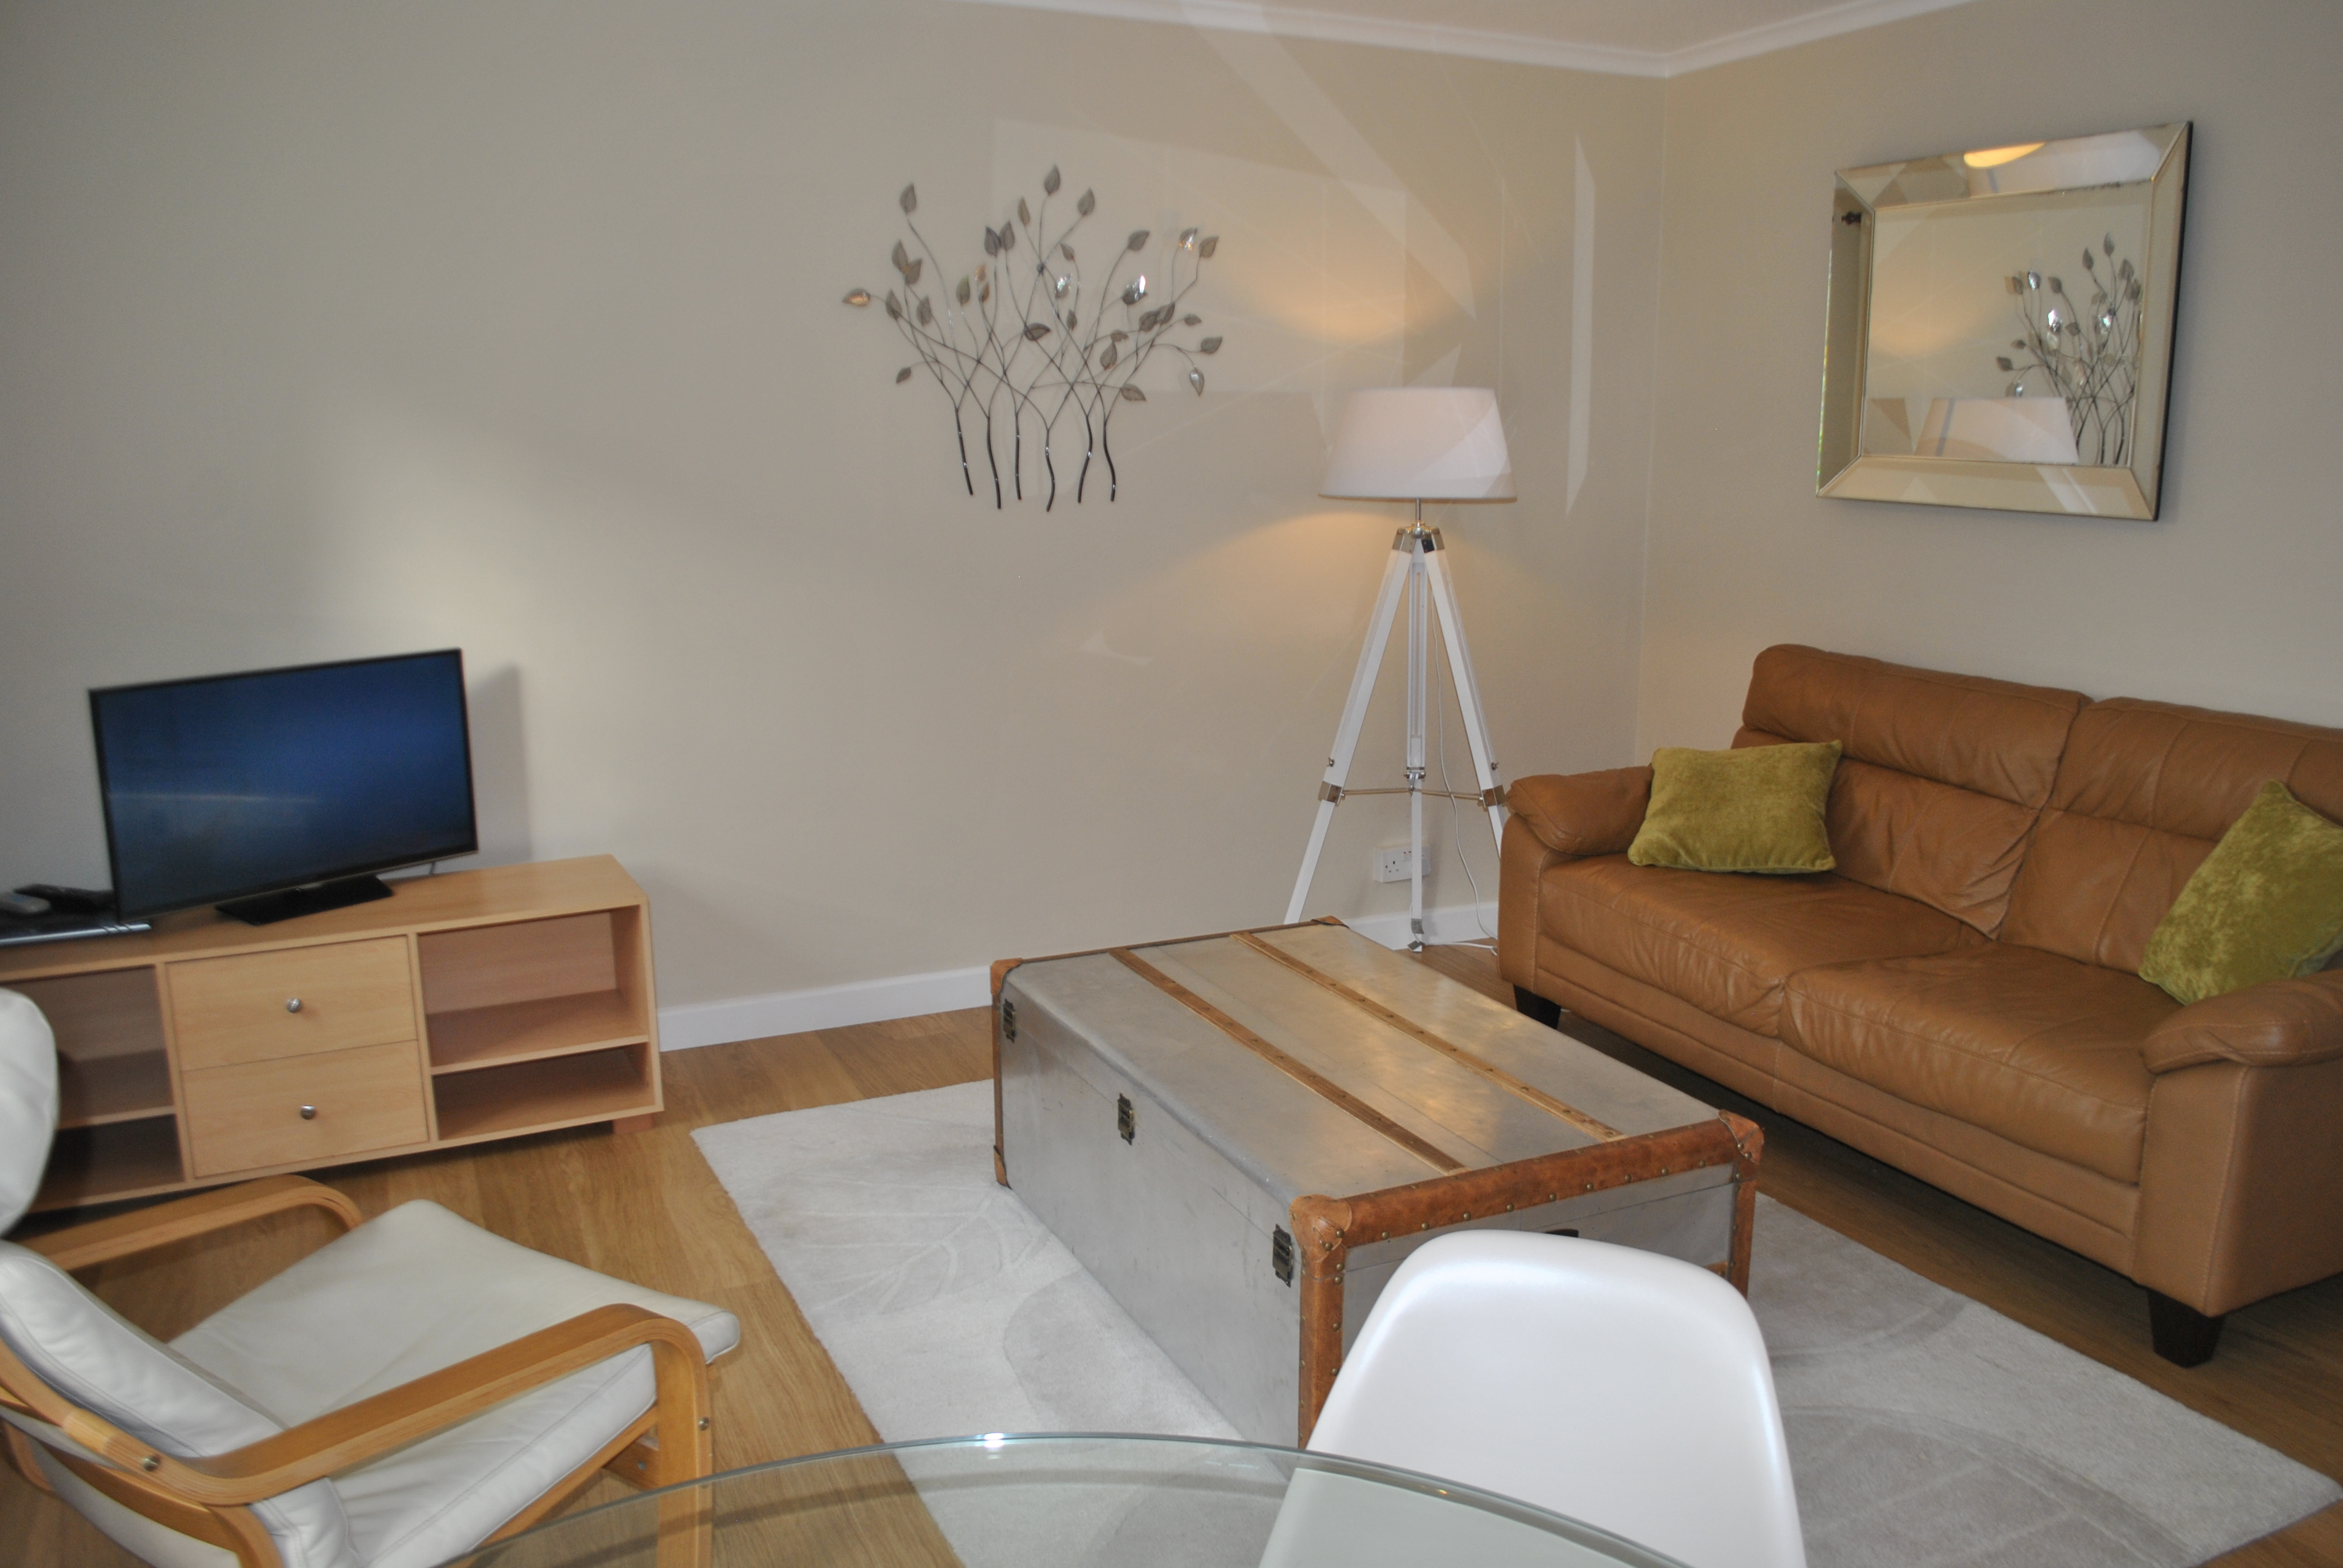 Lawrence Court - Short stay properties in Windsor UK